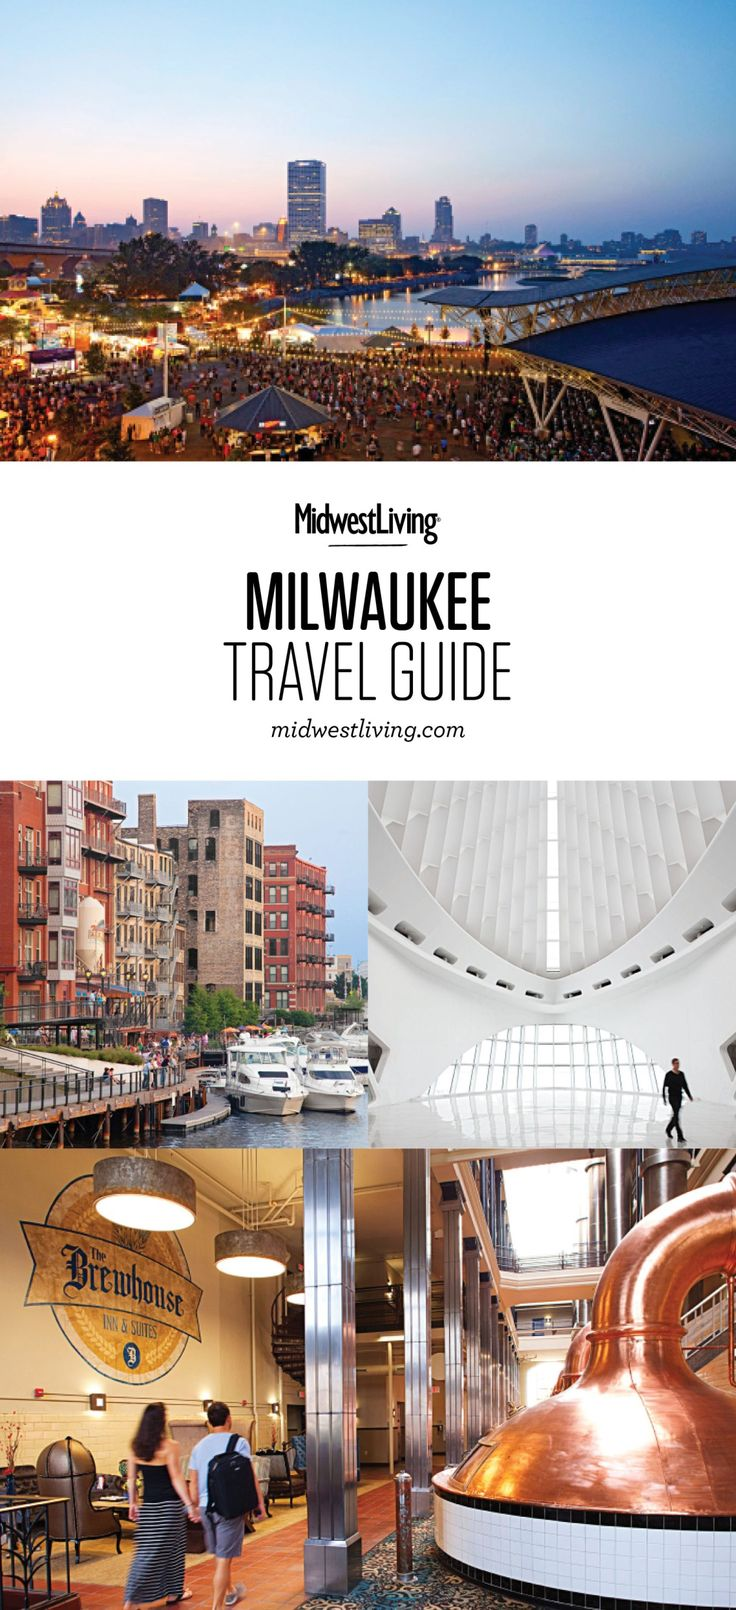 Milwaukee maintains ties to its German heritage while celebrating the present at a motorcycle museum and fantastic festivals along Lake Michigan. Check out our picks for what to do, where to eat and where to stay in Milwaukee.